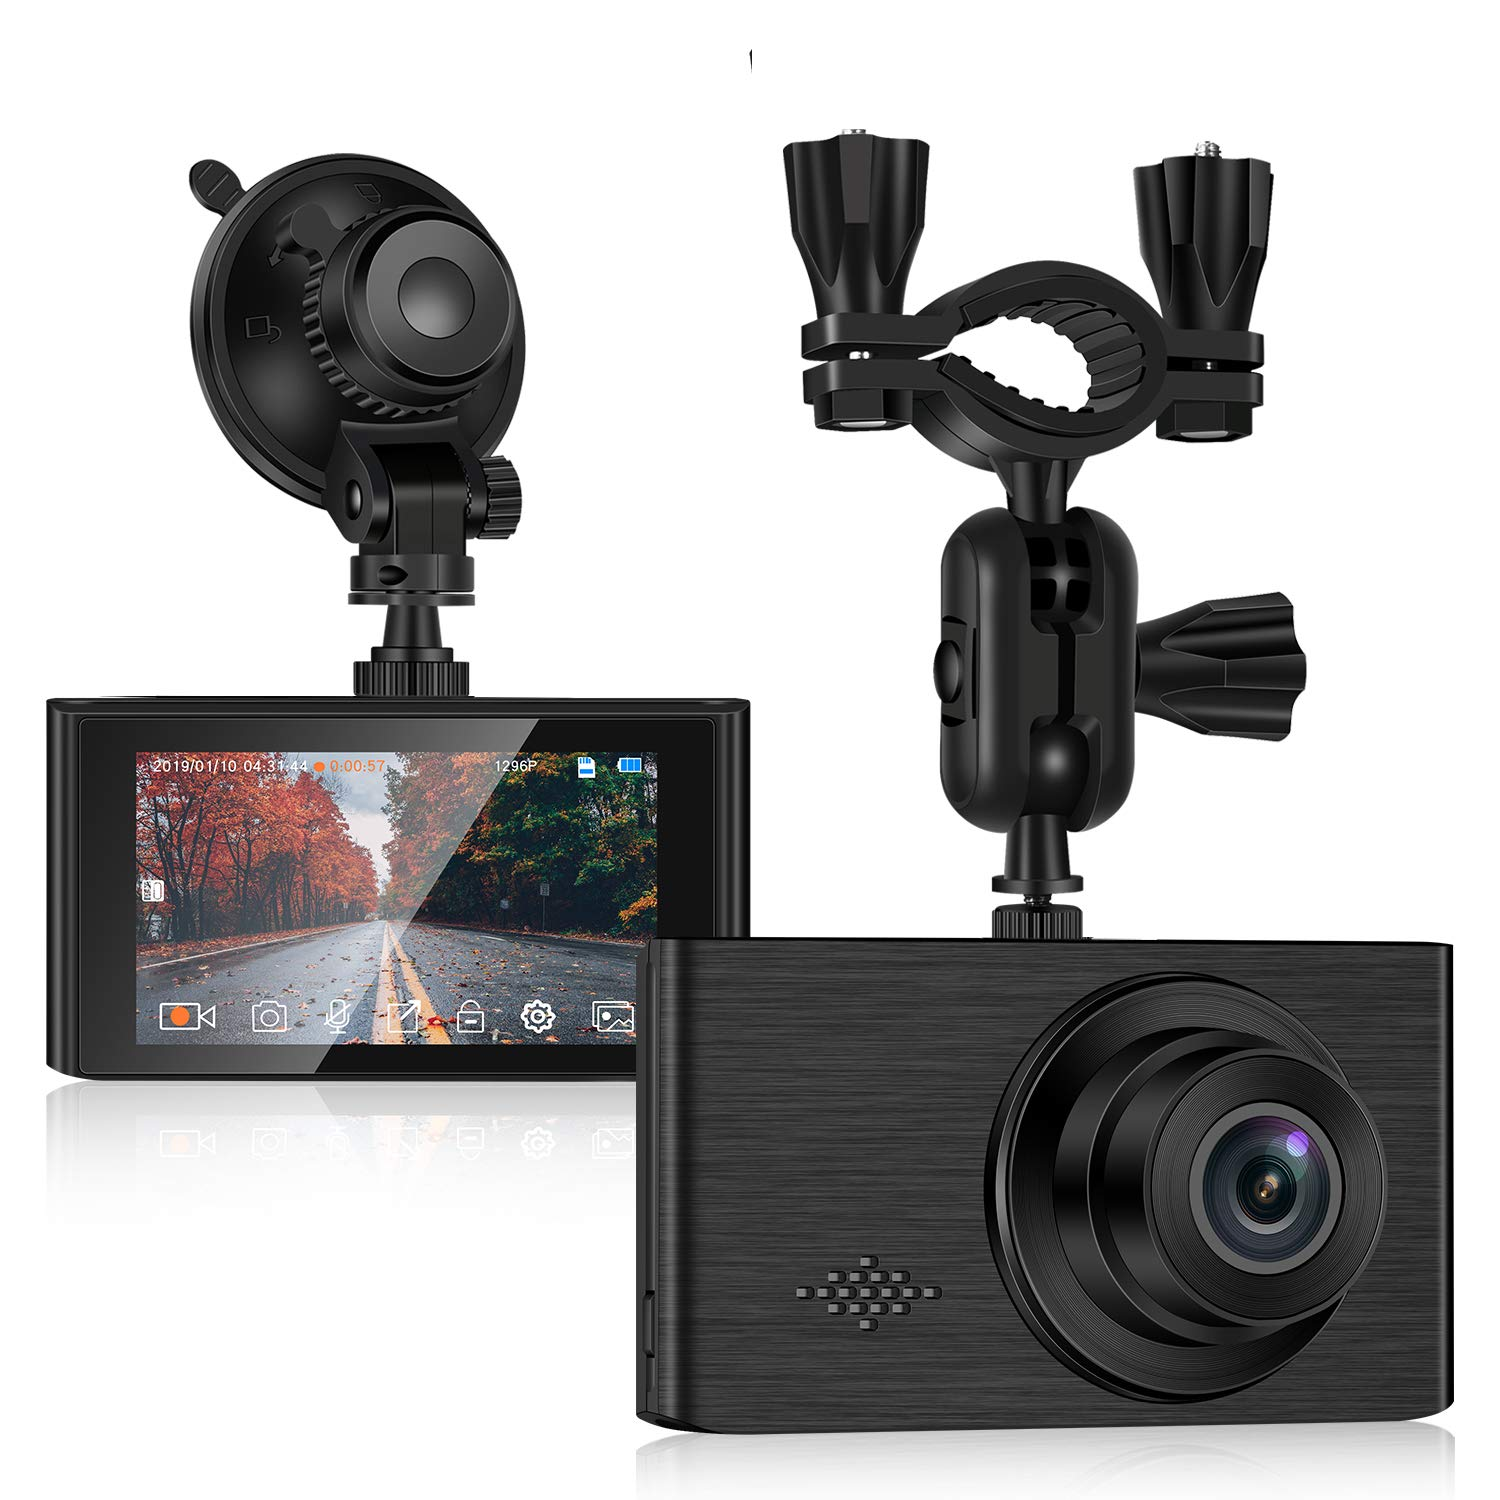 Dash Cam for car, 1296P Full HD Dash Camera for Cars Recorder Super Night Vision, 3 inches IPS Touch Screen 170° Wide Angle, G-Sensor, Support 64GB Card